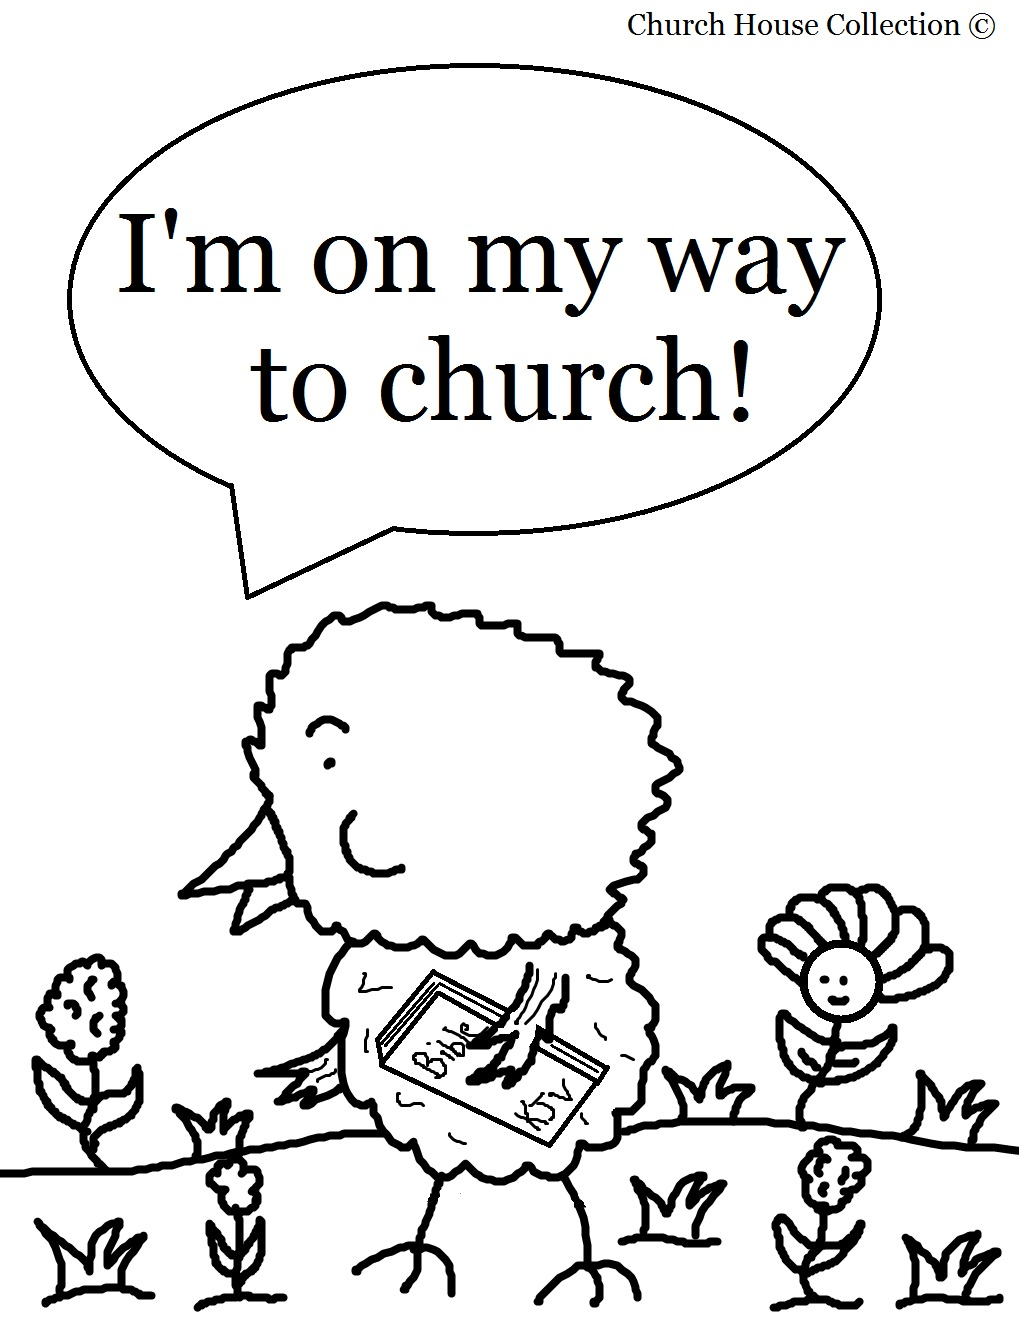 Church house collection blog march 2013 for Coloring pages for sunday school preschool